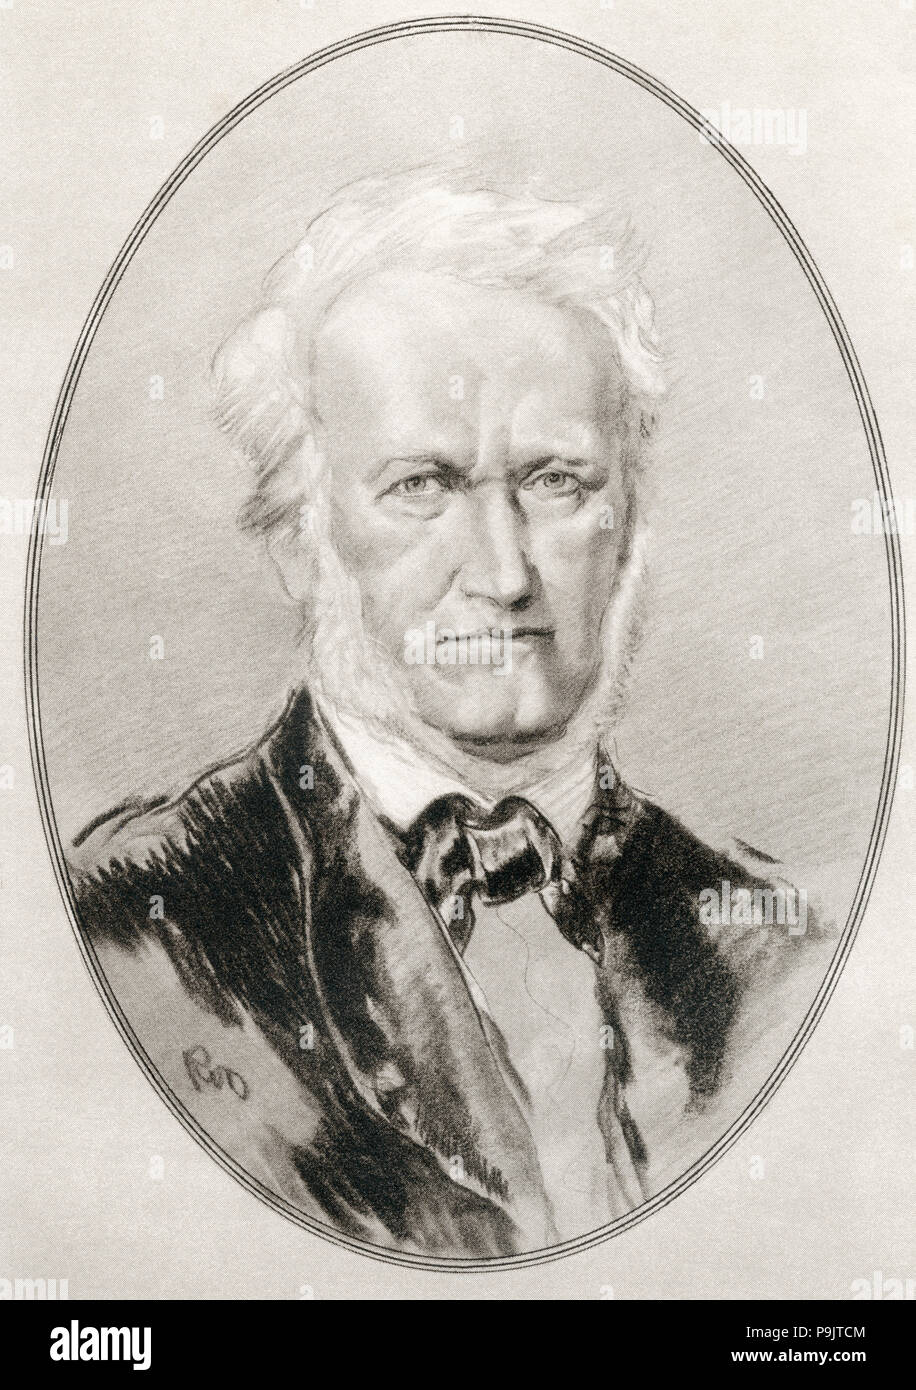 Wilhelm Richard Wagner, 1813 – 1883.  German composer, theatre director, polemicist, and conductor.   Illustration by Gordon Ross, American artist and illustrator (1873-1946), from Living Biographies of Great Composers. Stock Photo